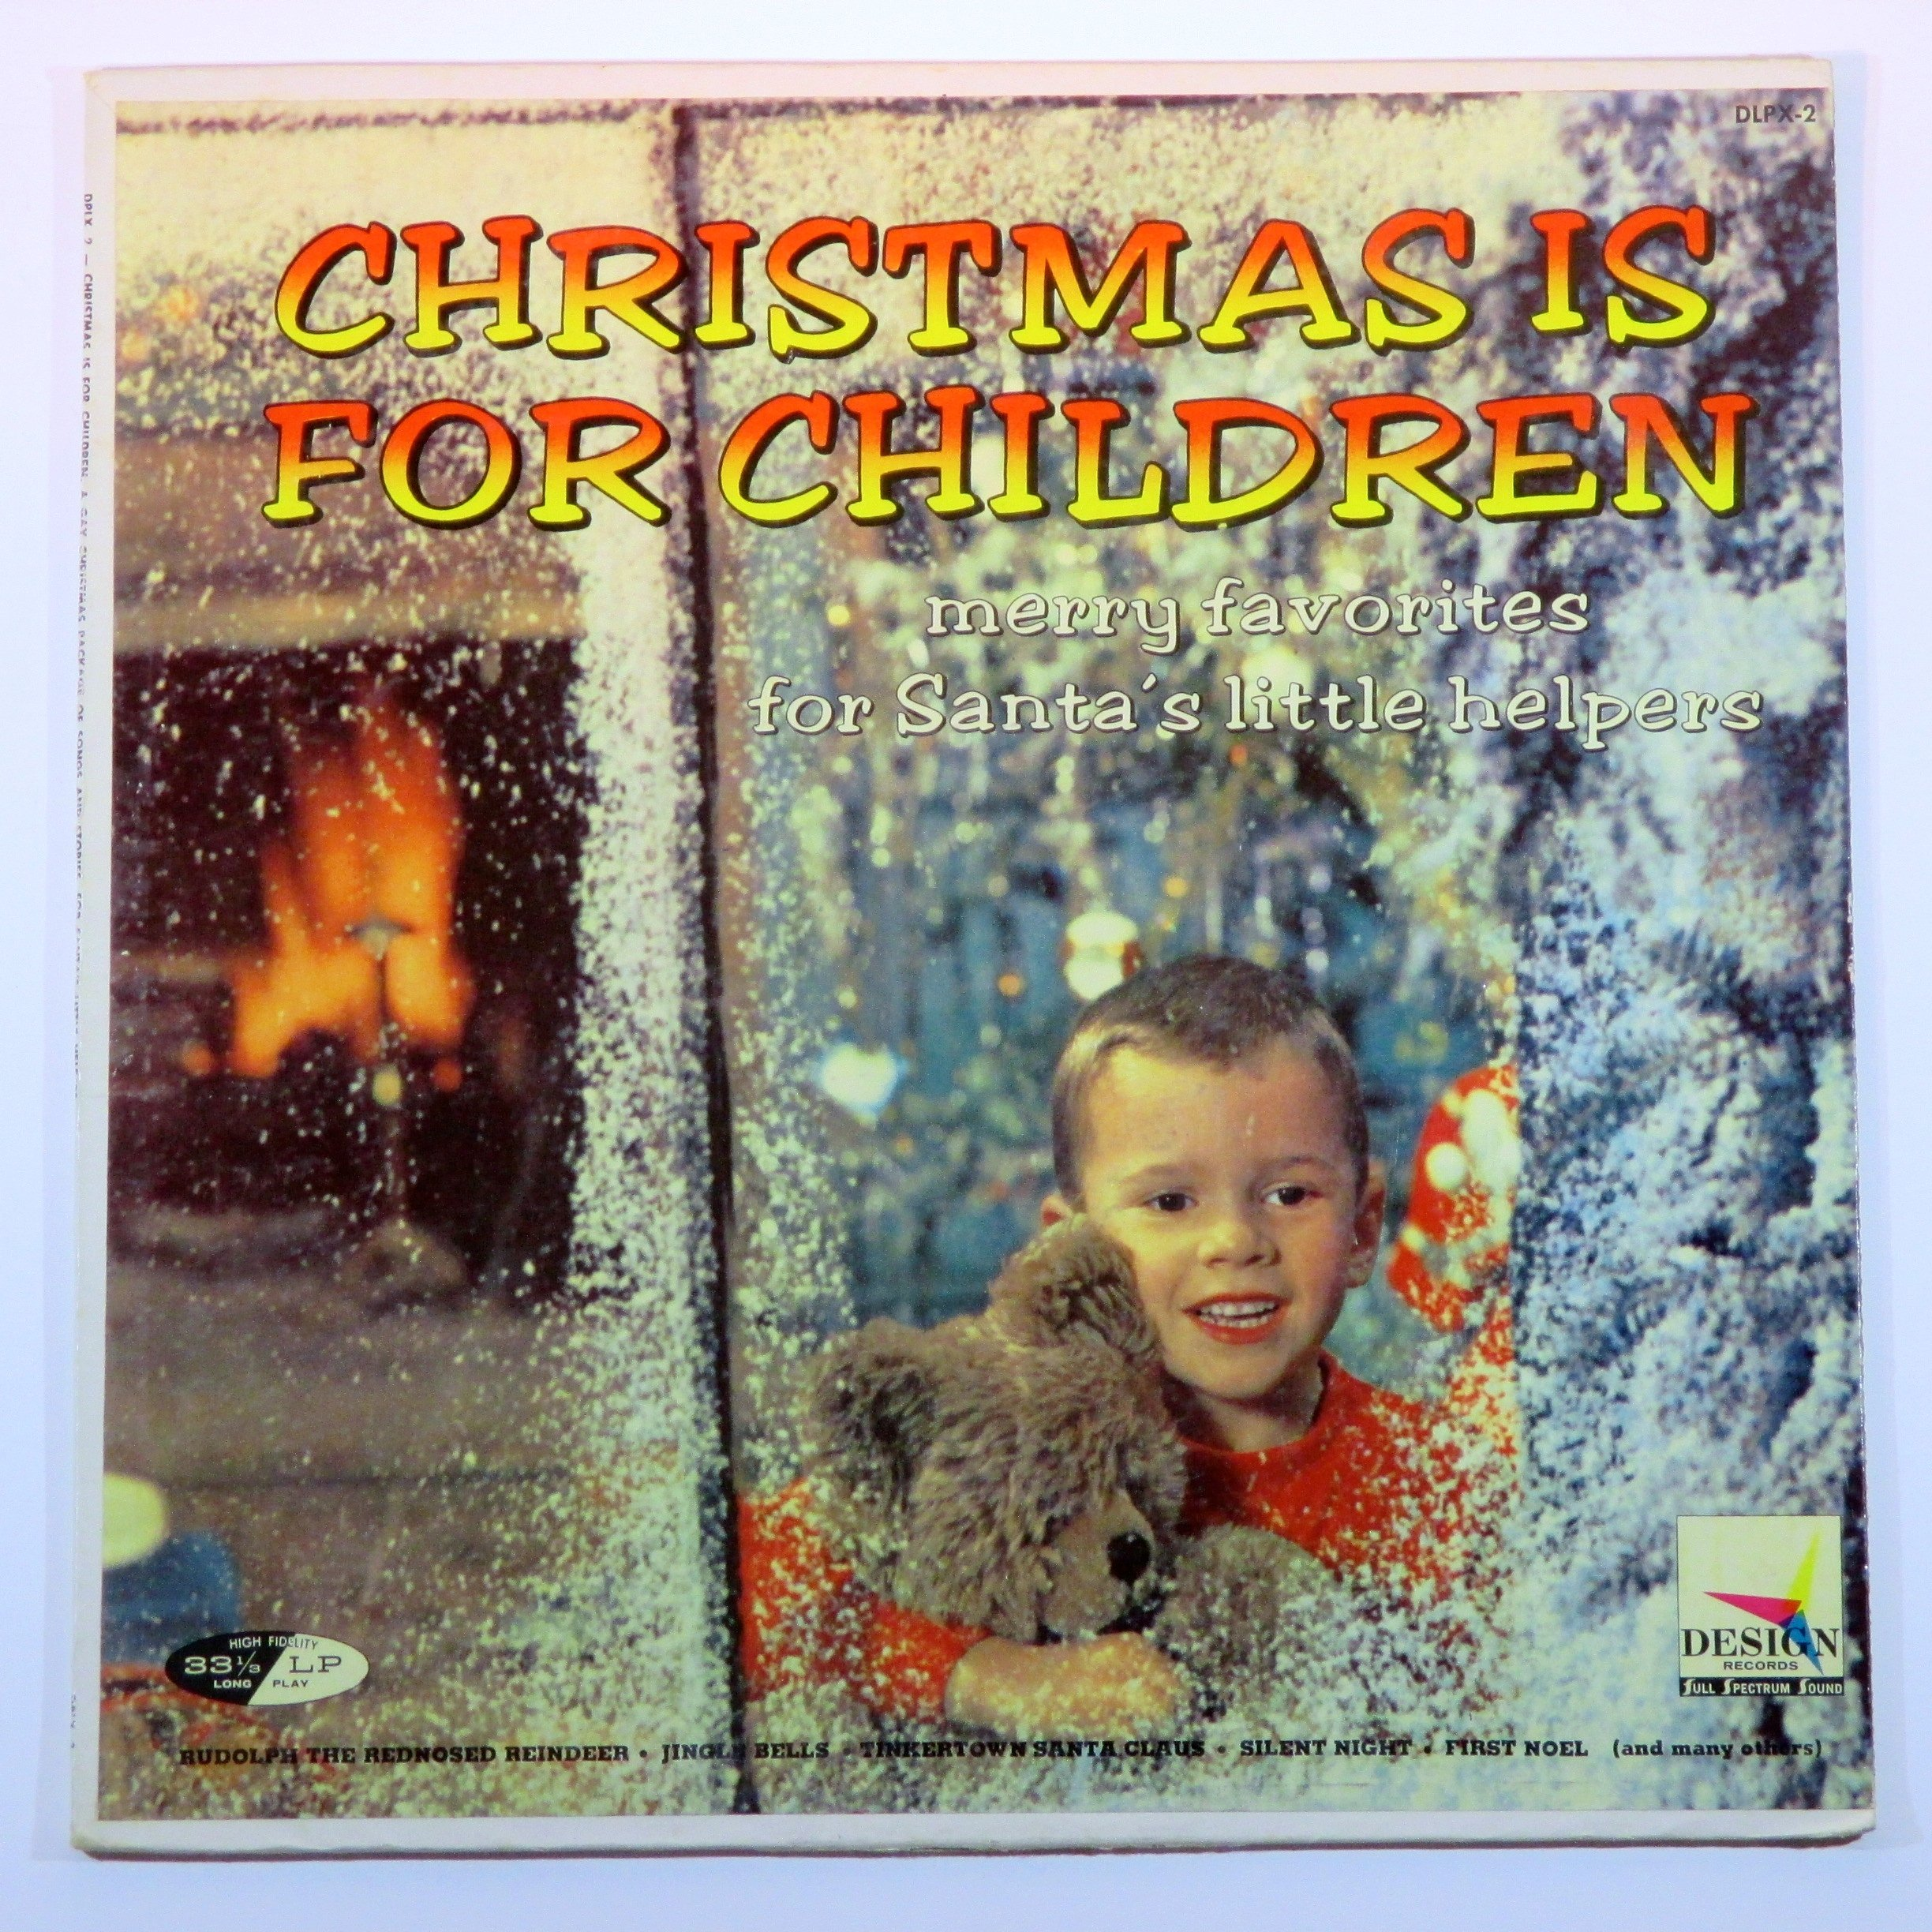 Christmas Is for Children: A Gay Christmas Package of Songs and Stories for Santa's Little Helpers